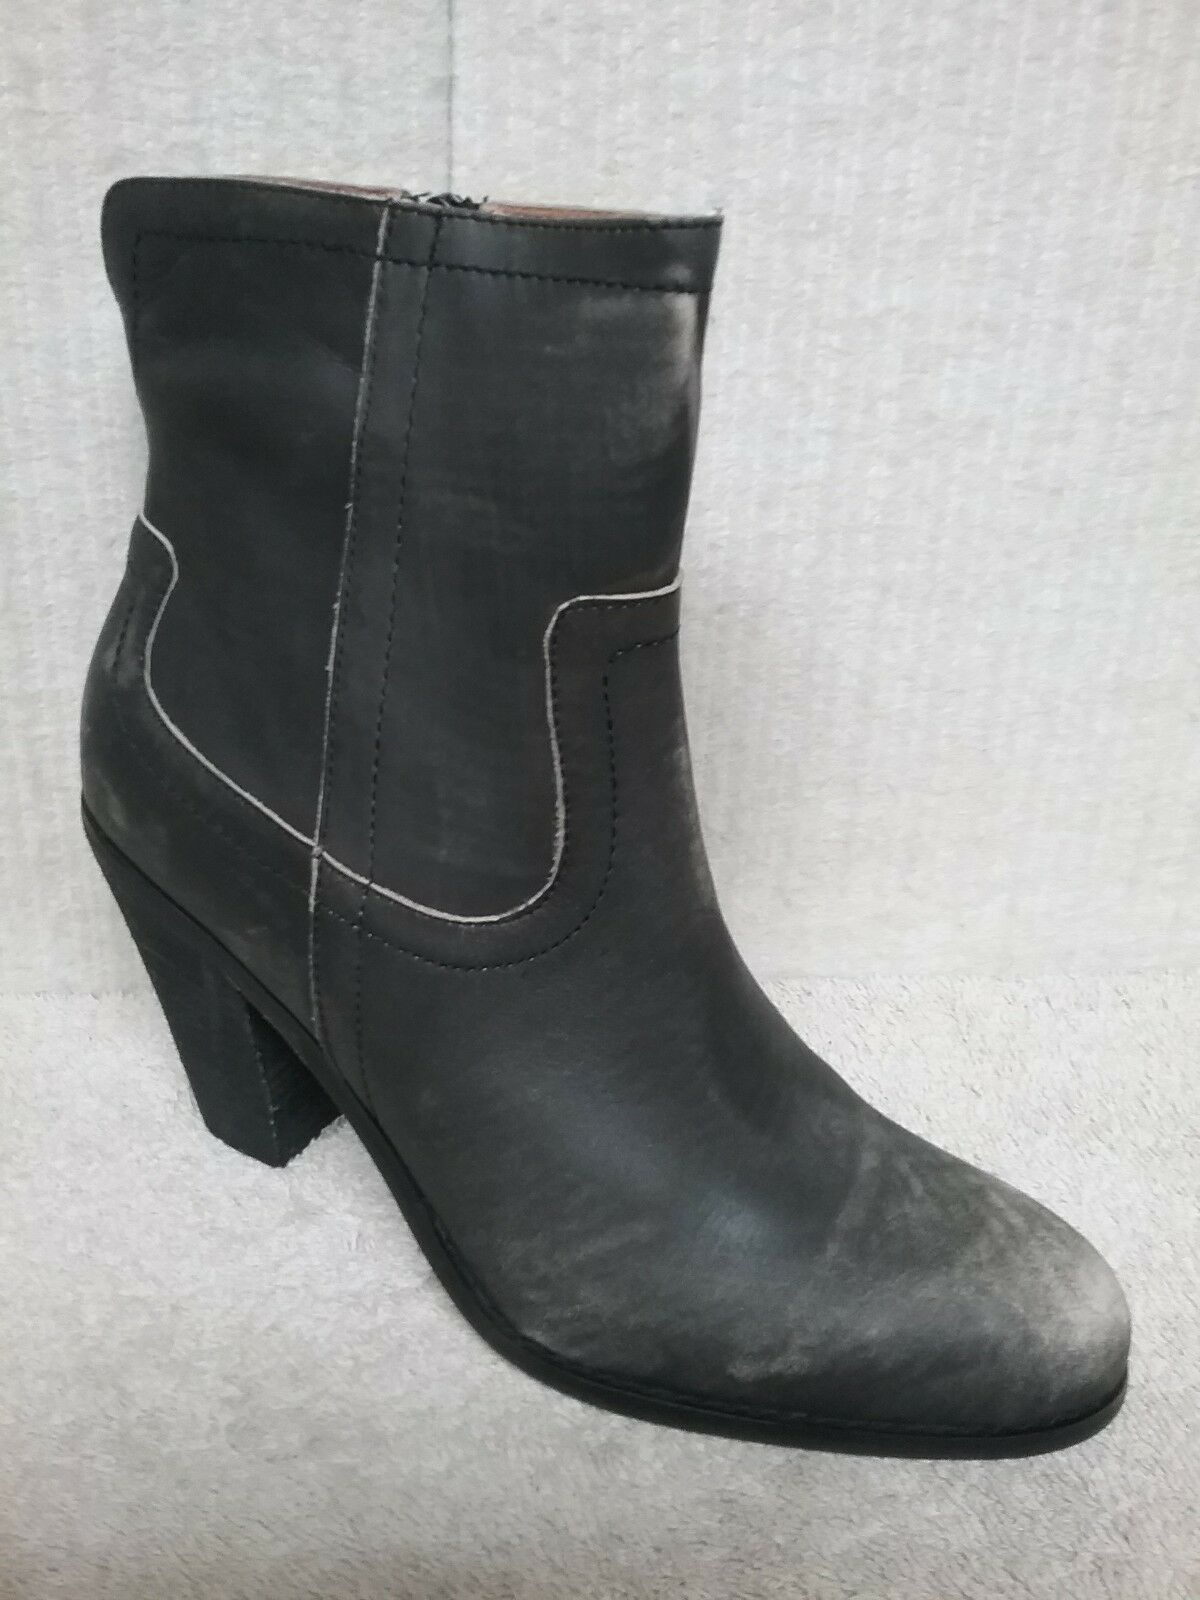 CORSO COMO - HARVERST - Women's Ankle Boots Heels - Distressed Leather - Size 8